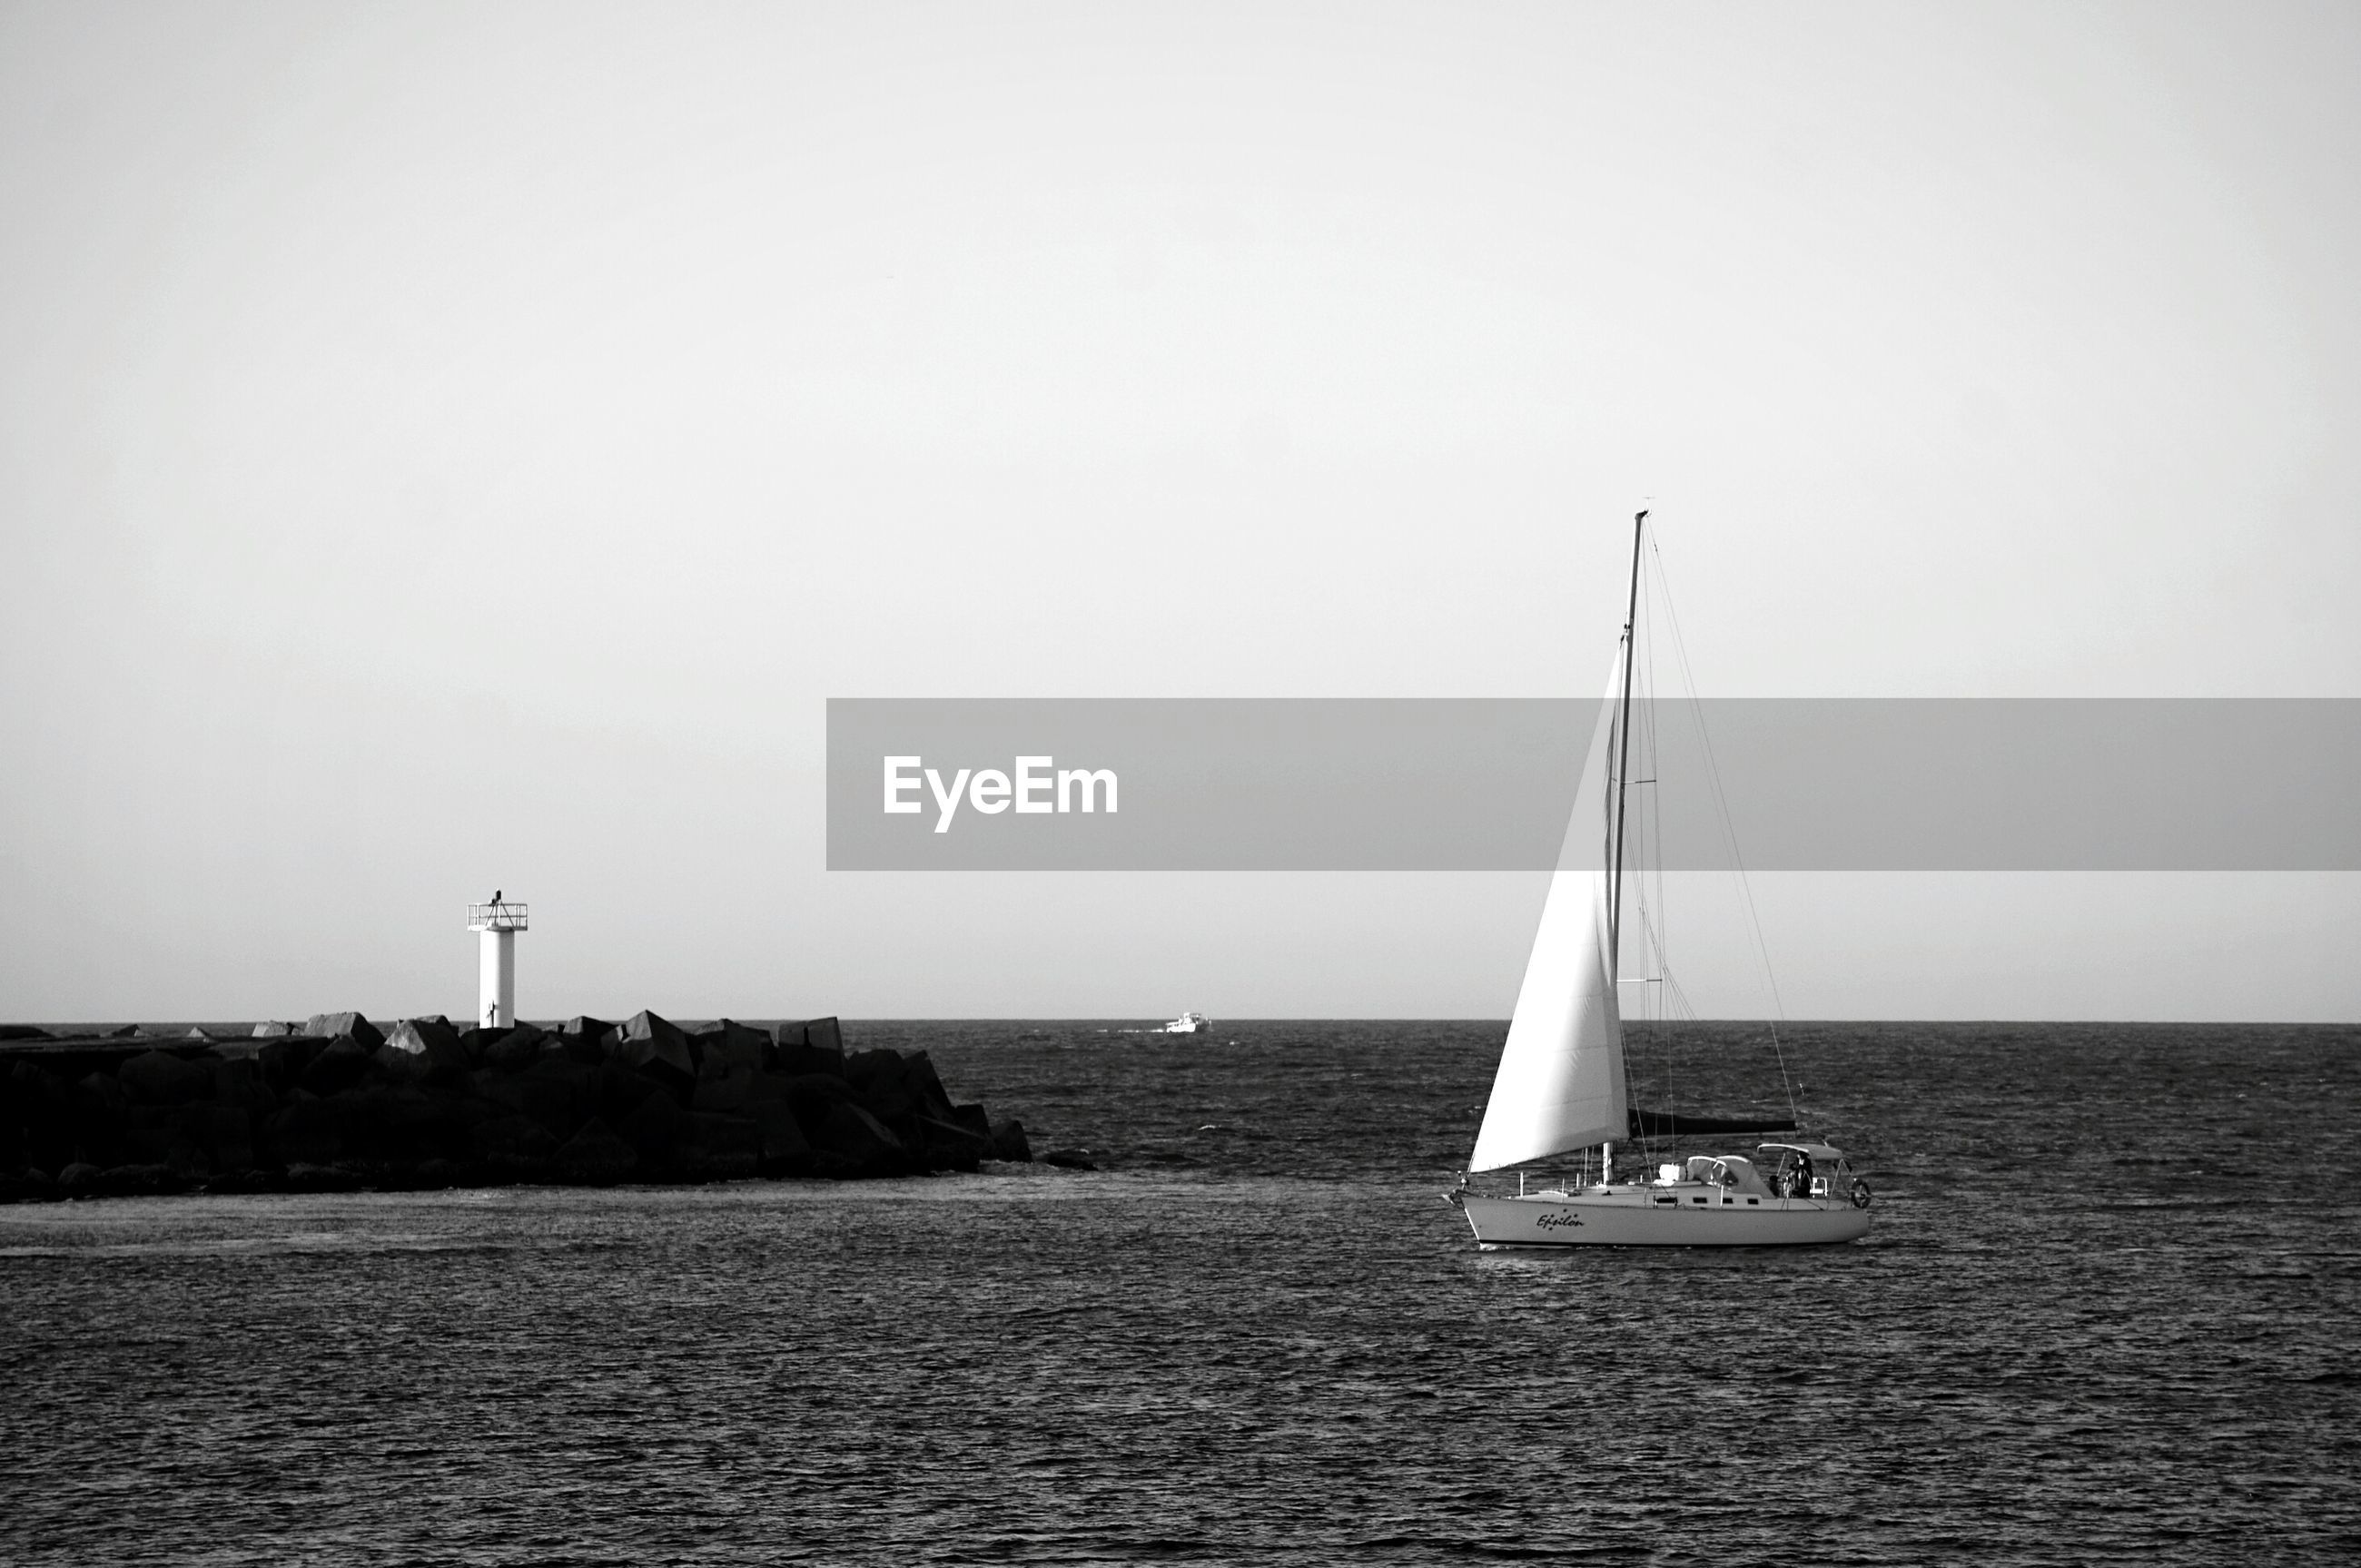 Sailboat sailing in sea by lighthouse against clear sky